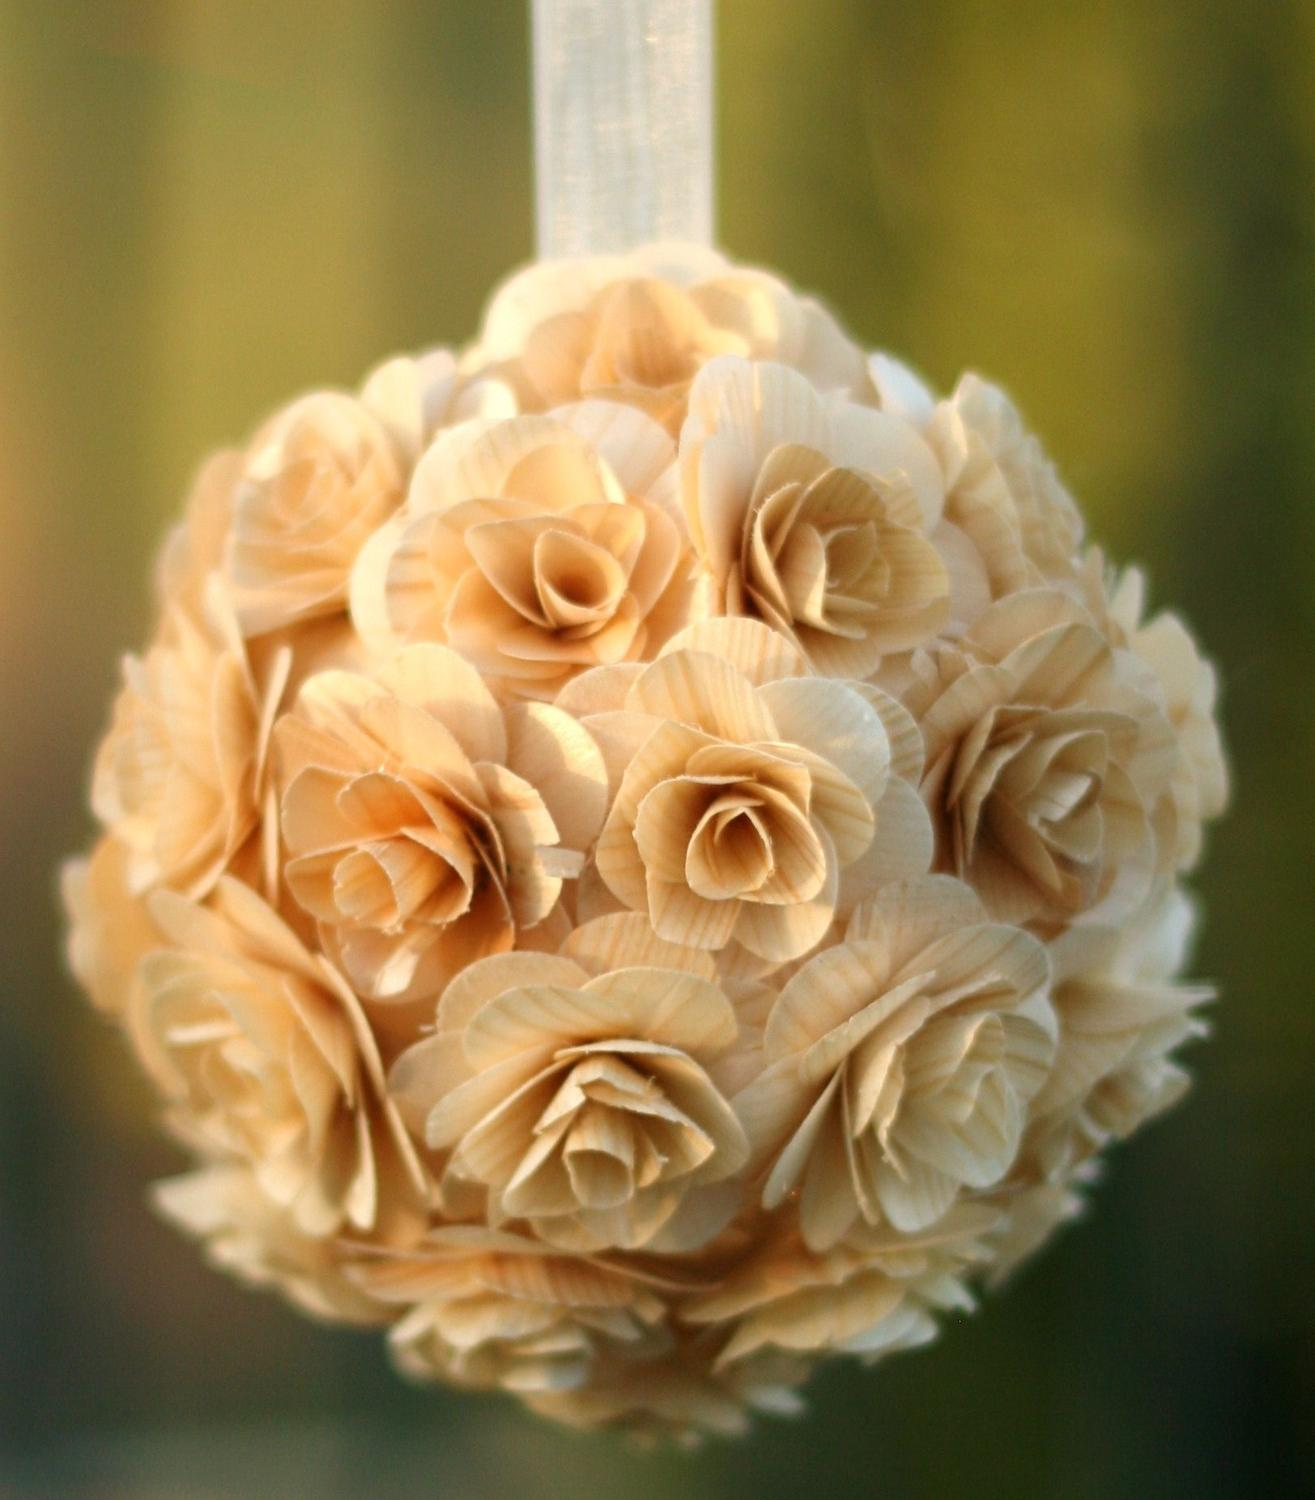 Ball Decoration For Aisle,